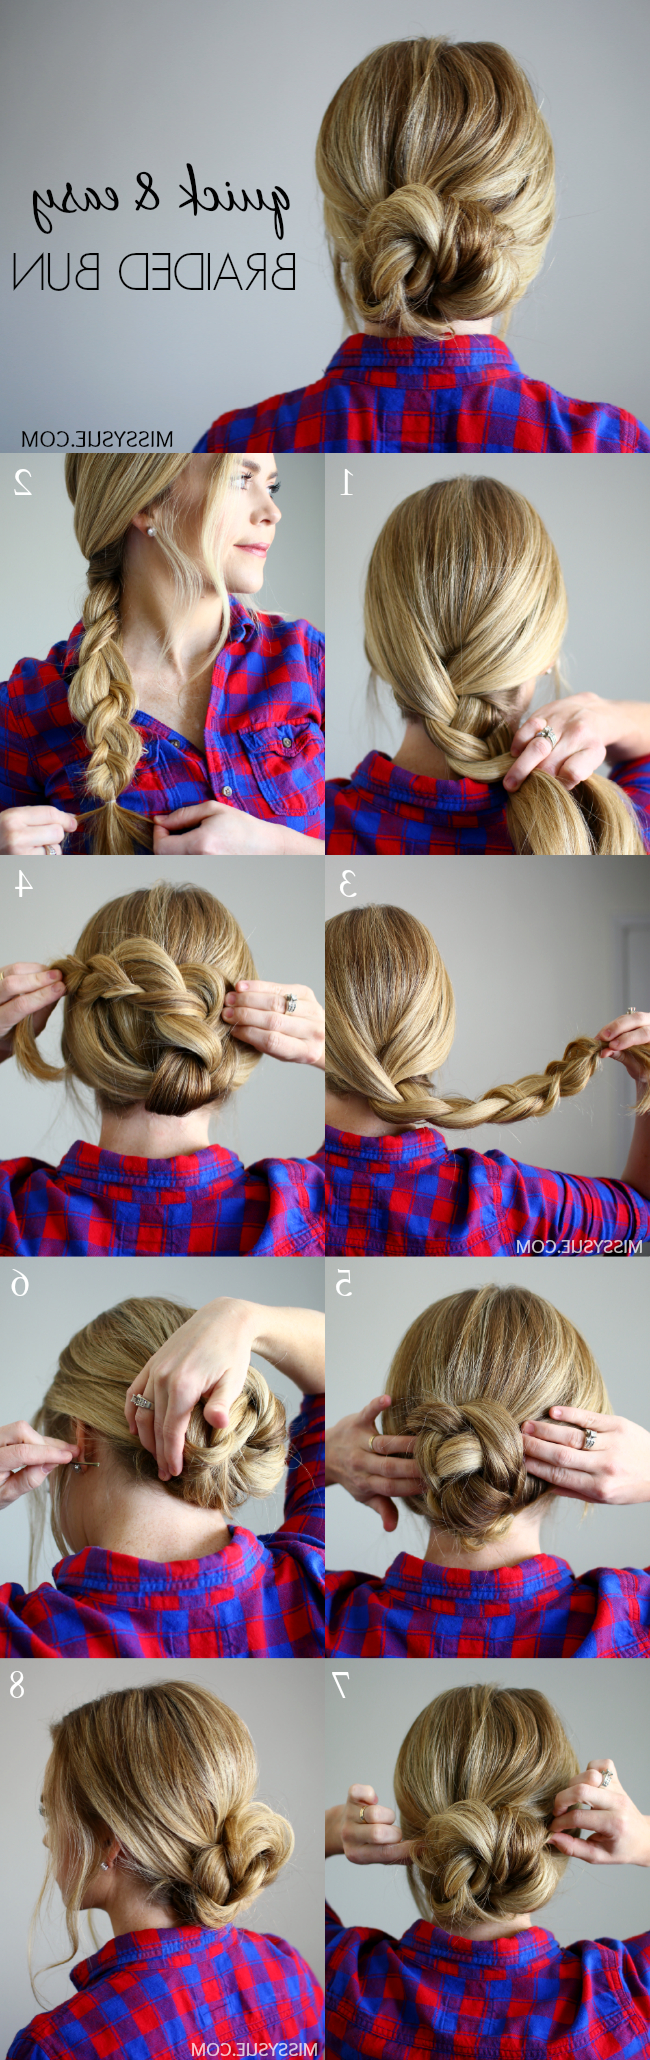 2020 Low Braided Bun Updo Hairstyles In Quick And Easy Braided Bun (View 1 of 20)